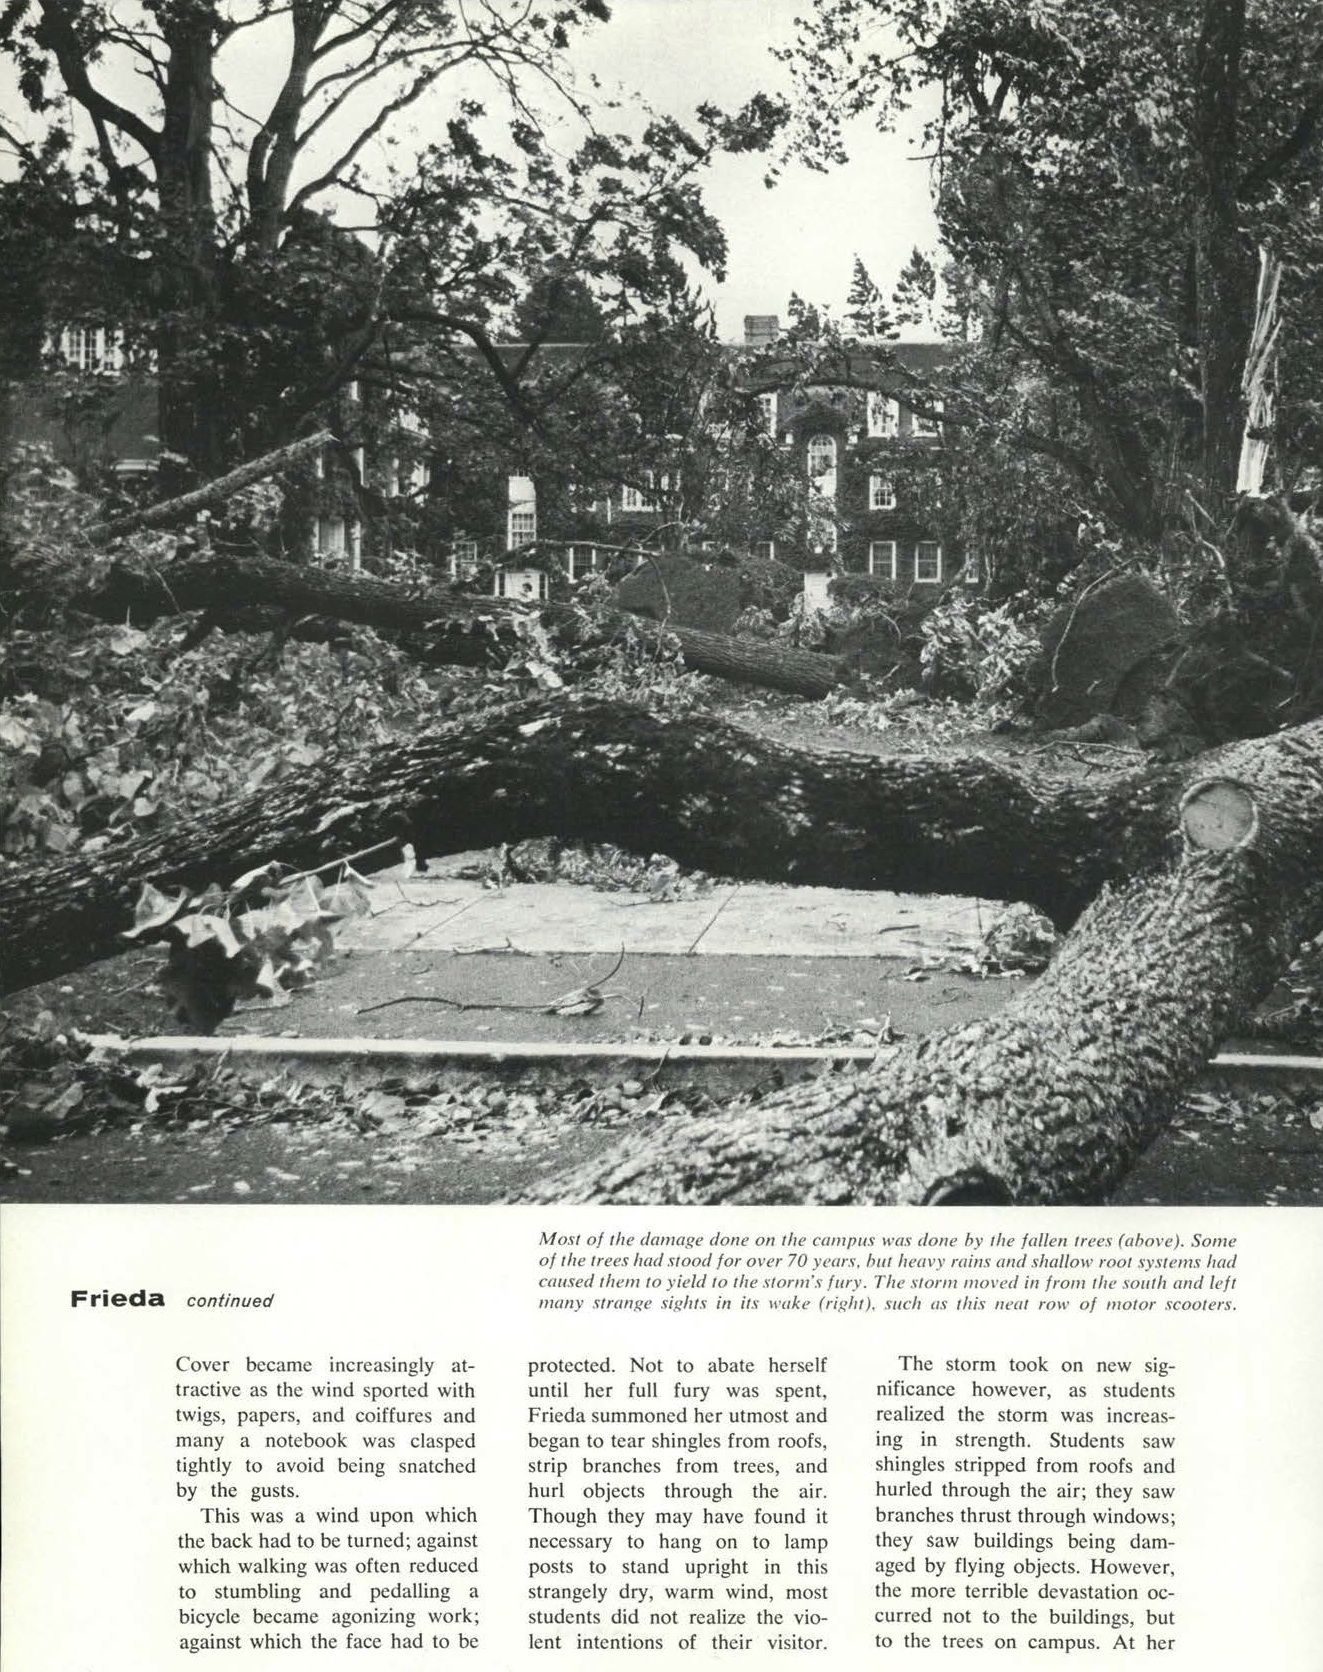 Pt 2 Of Recap Of 1962 Columbus Day Storm Typhoon Frieda Destroyed Most Of The Trees On Campus Damaged Buildings University Of Oregon Oregon Evergreen State